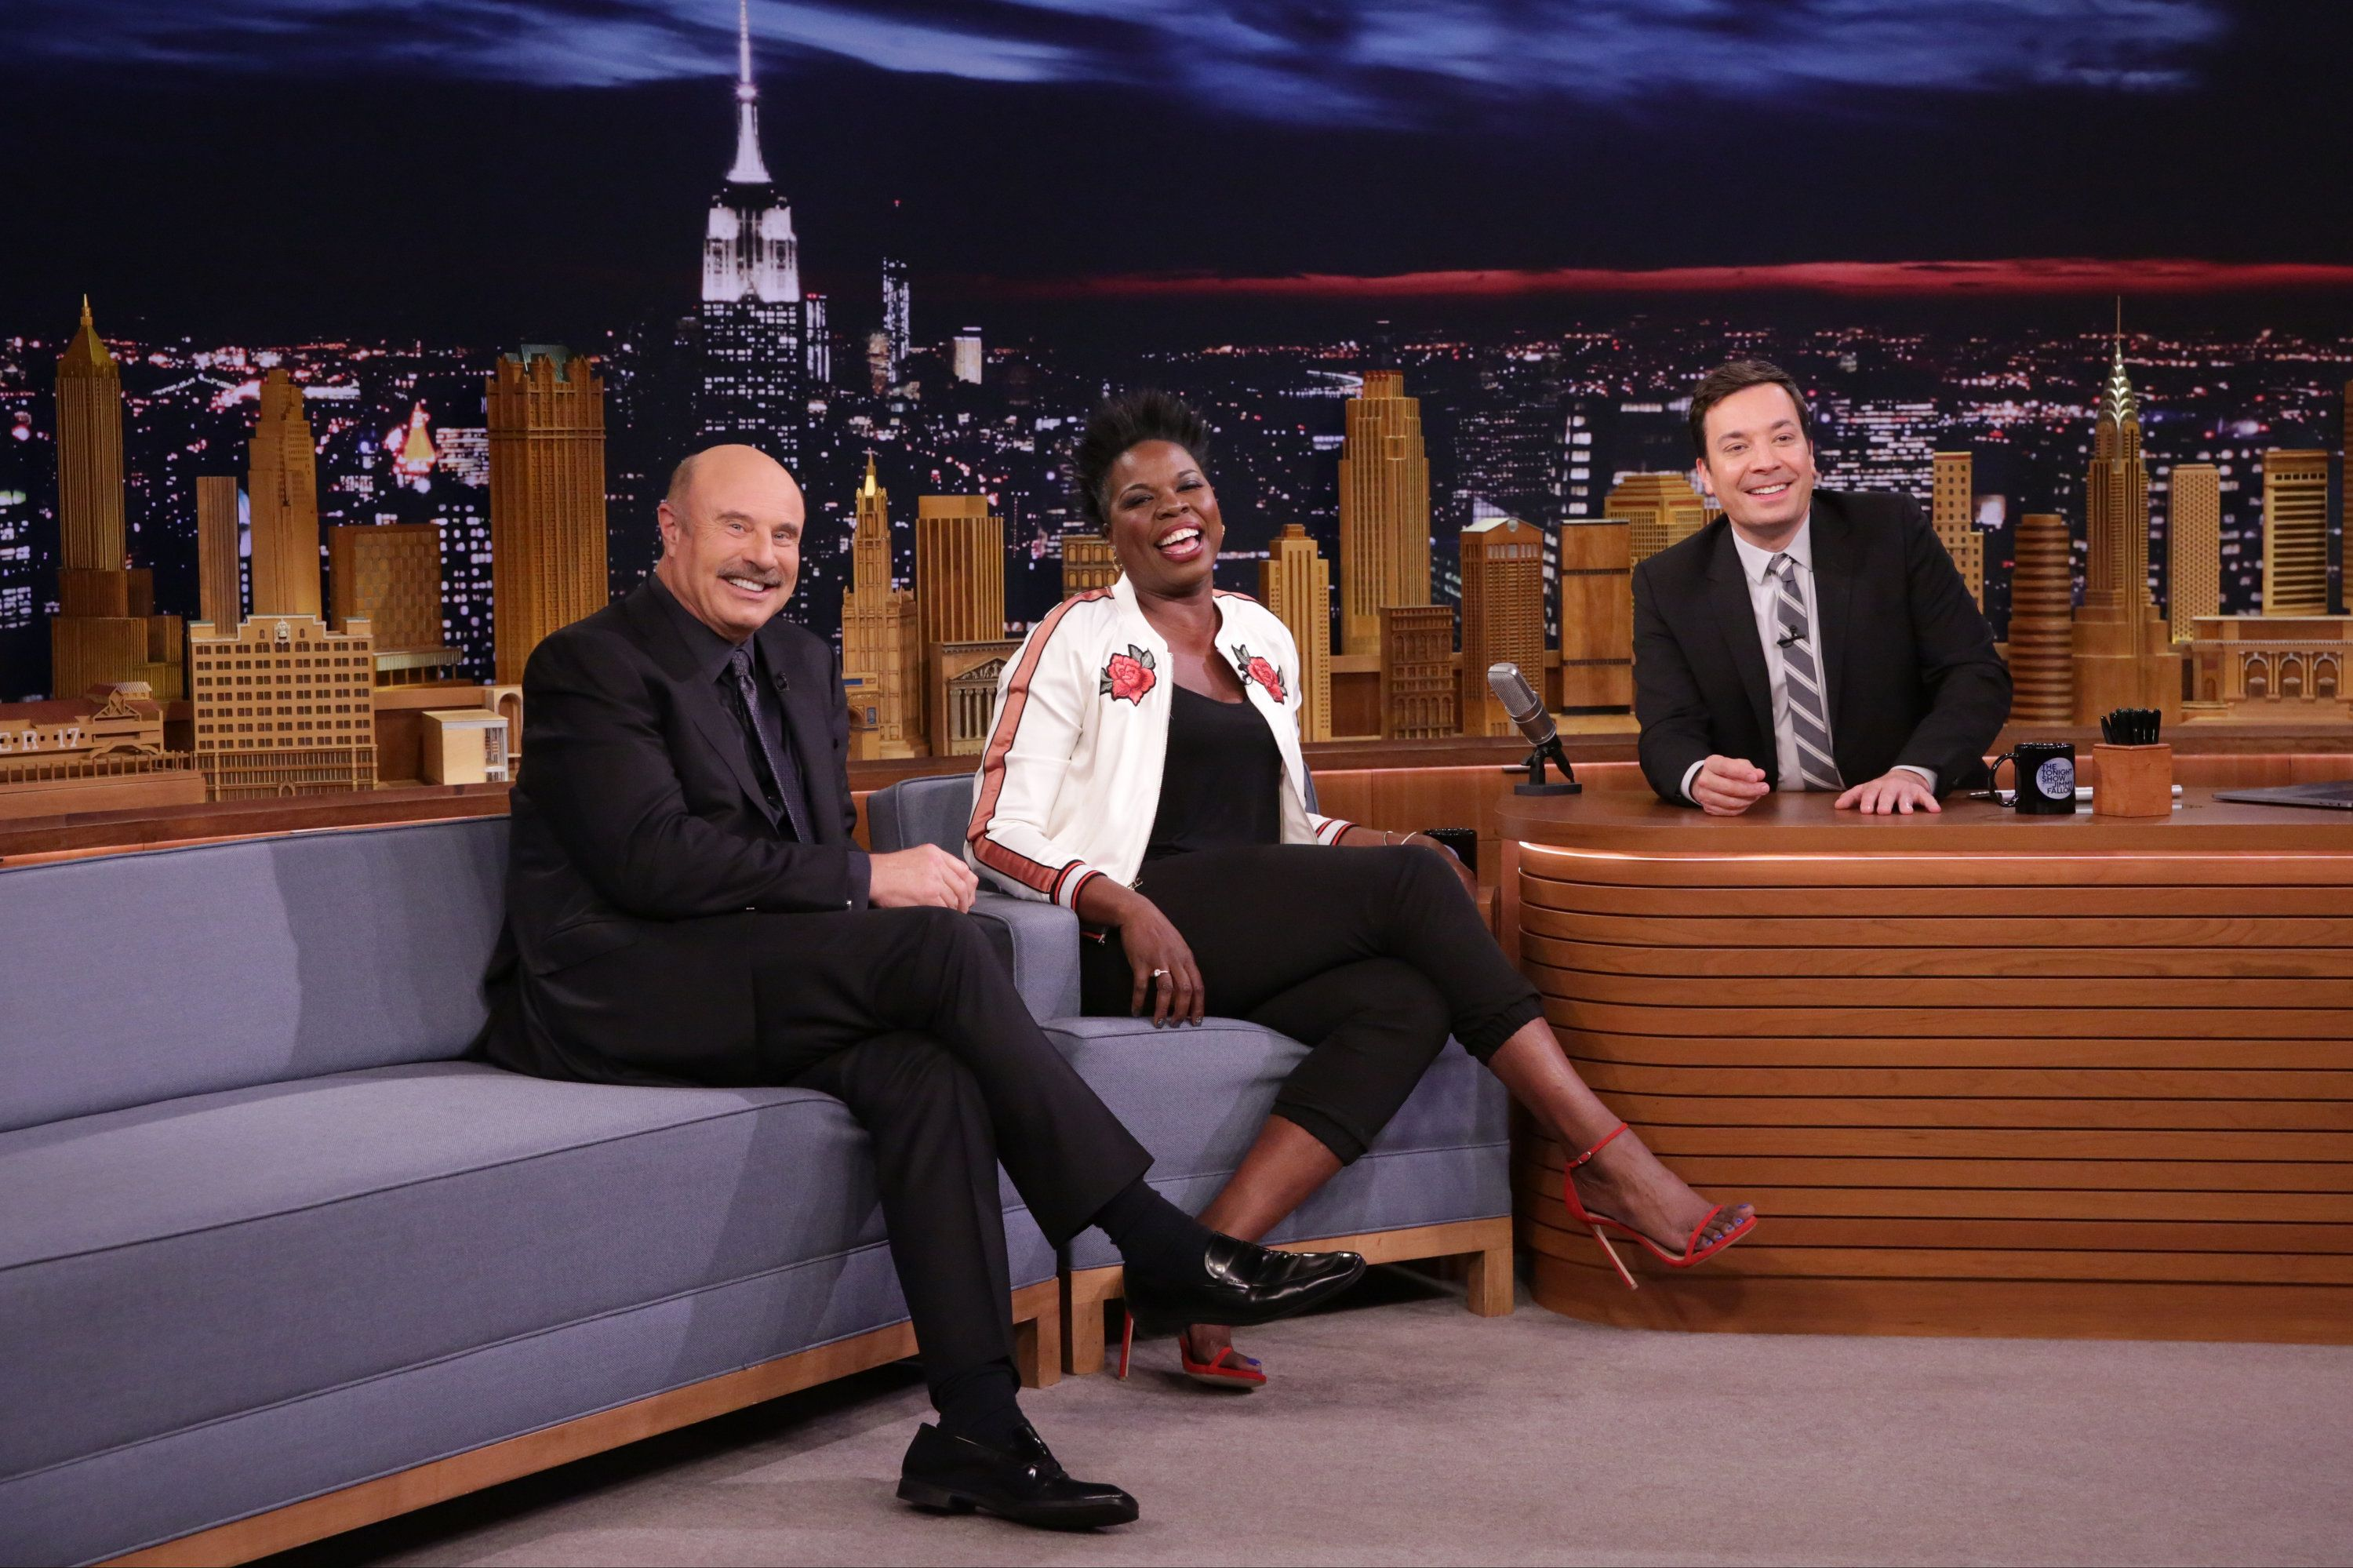 THE TONIGHT SHOW STARRING JIMMY FALLON -- Episode 0662 -- Pictured: (l-r) Talk Show Host Dr. Phil, comedian Leslie Jones, and host Jimmy Fallon during an interview on April 26, 2017 -- (Photo by: Andrew Lipovsky/NBC/NBCU Photo Bank via Getty Images)